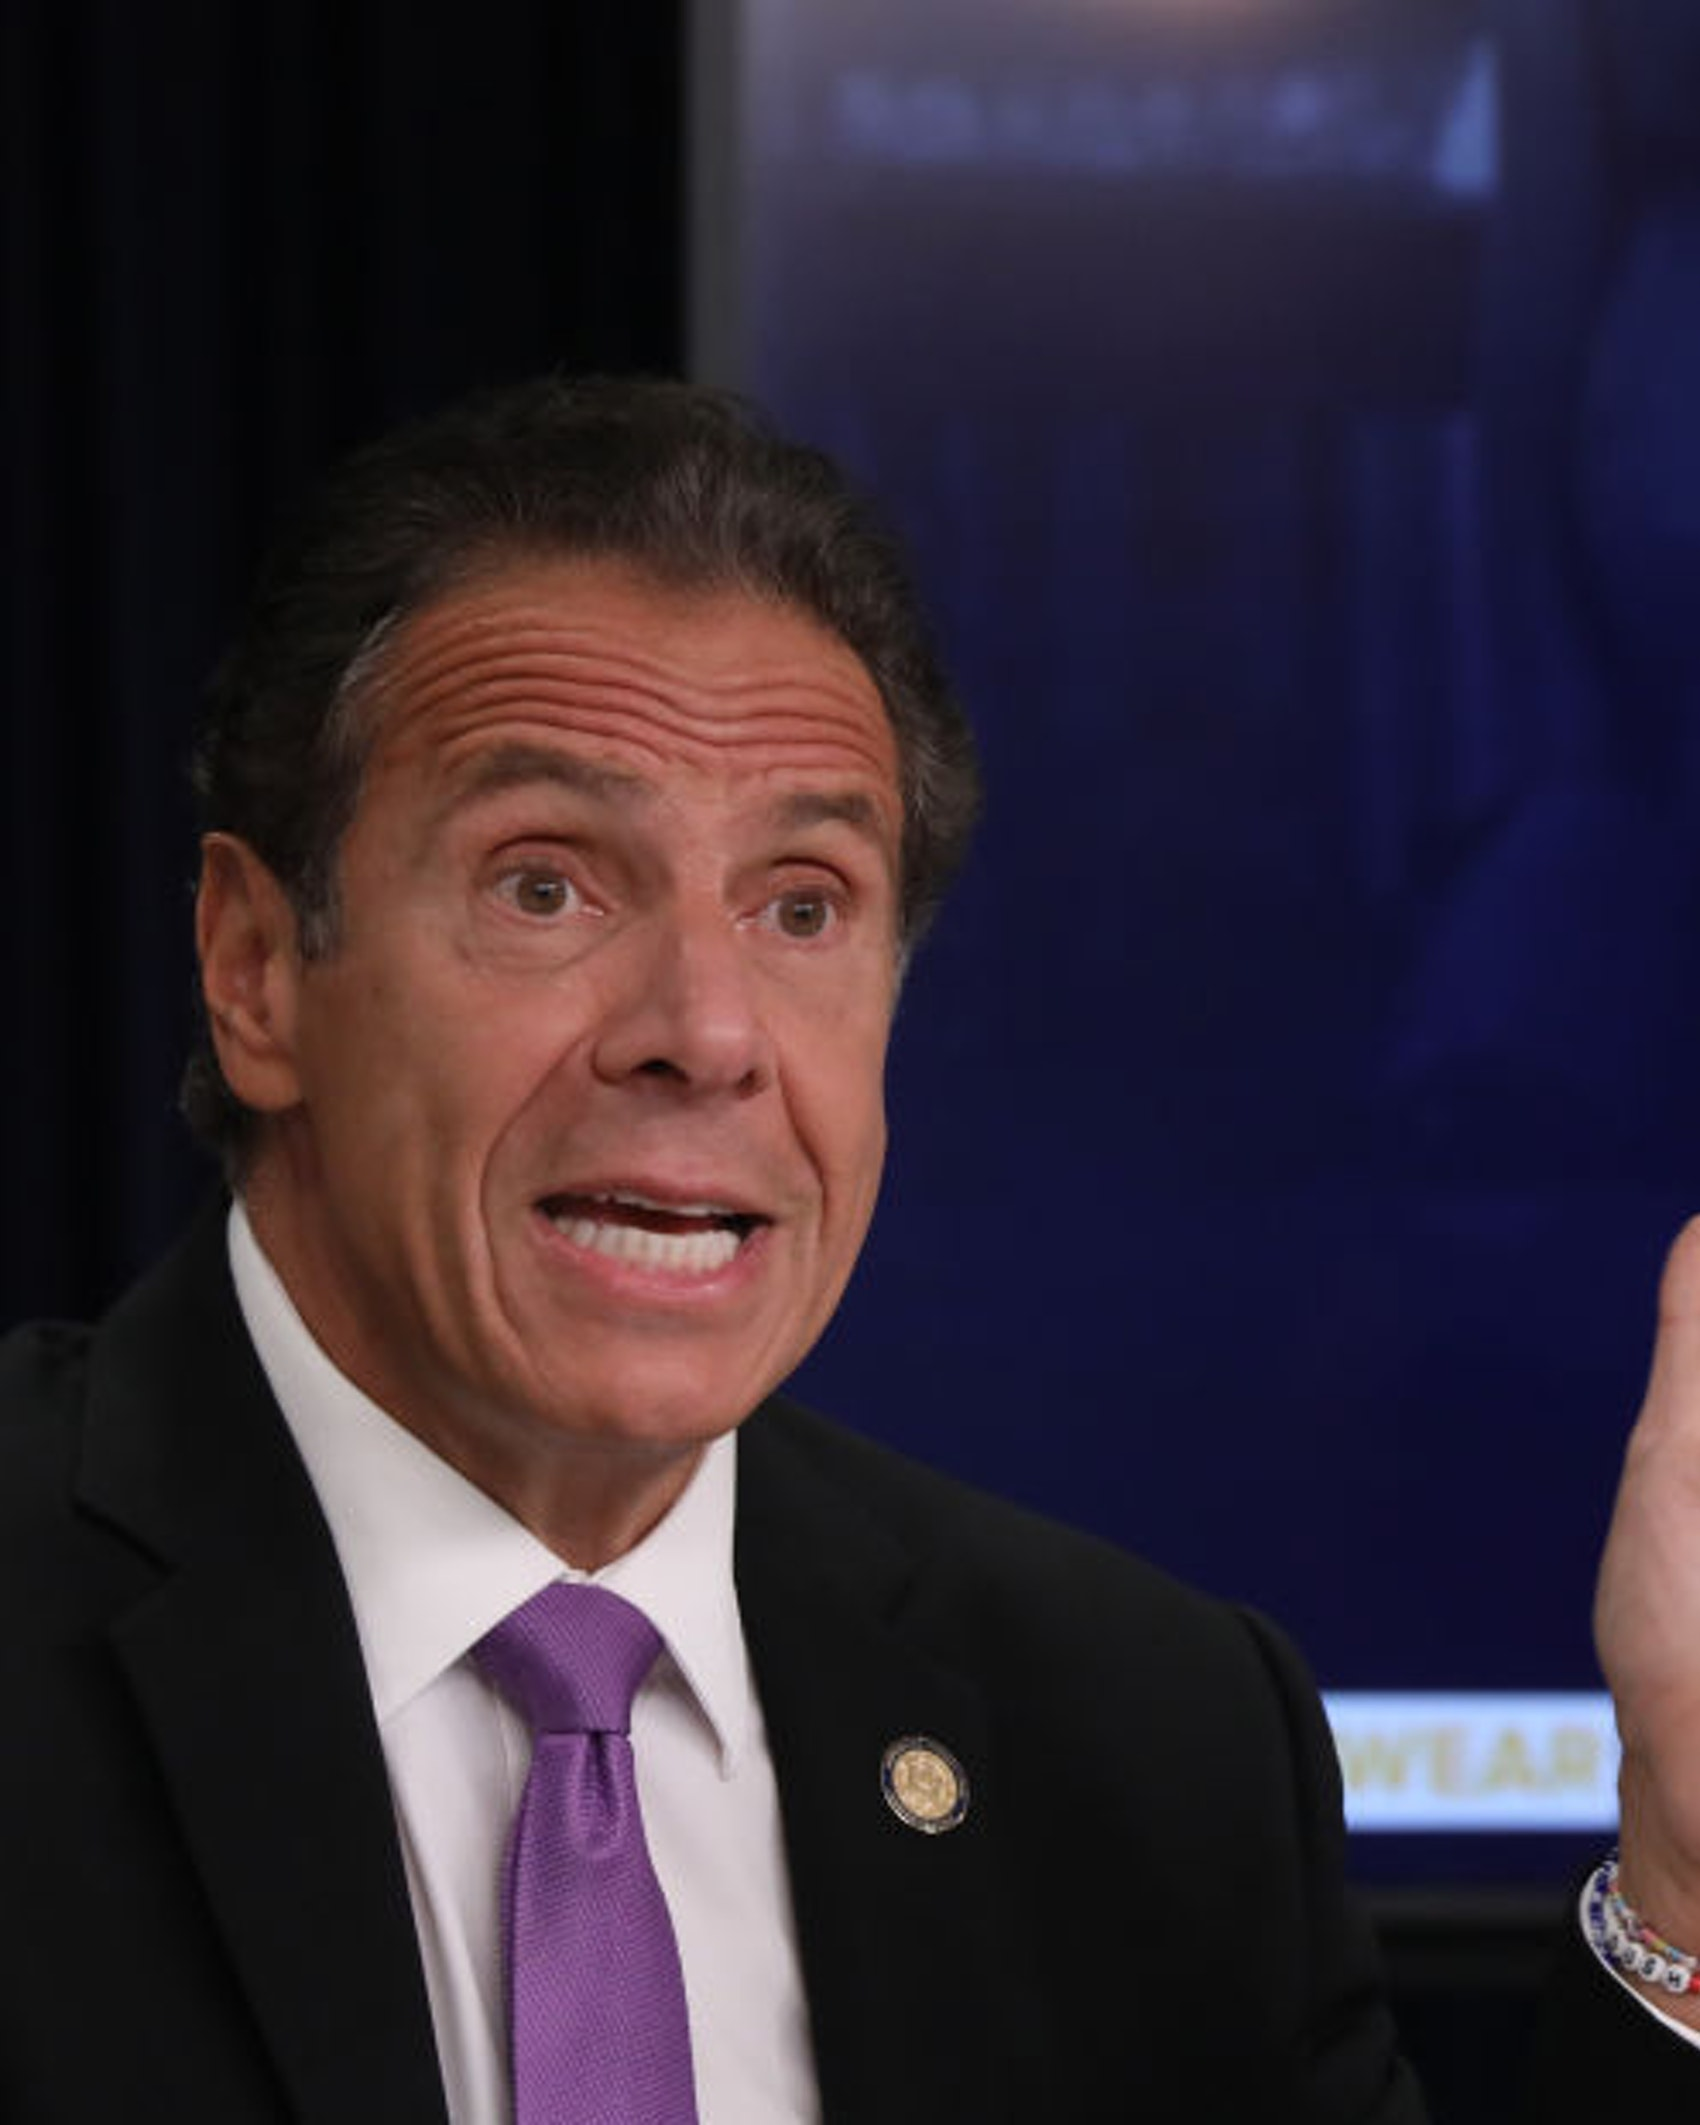 A mock up of a newspaper headline and photo of U.S. President Donald Trump is displayed on a screen as New York state Gov. Andrew Cuomo criticizes Trump's handling of COVID-19 at a news conference on September 08, 2020 in New York City. Cuomo, though easing restrictions on casinos and malls throughout the state, has declined to do so for indoor dining in restaurants in New York City despite pressure from business owners, citing struggles by the city to enforce the state's previous orders. (Photo by Spencer Platt/Getty Images)